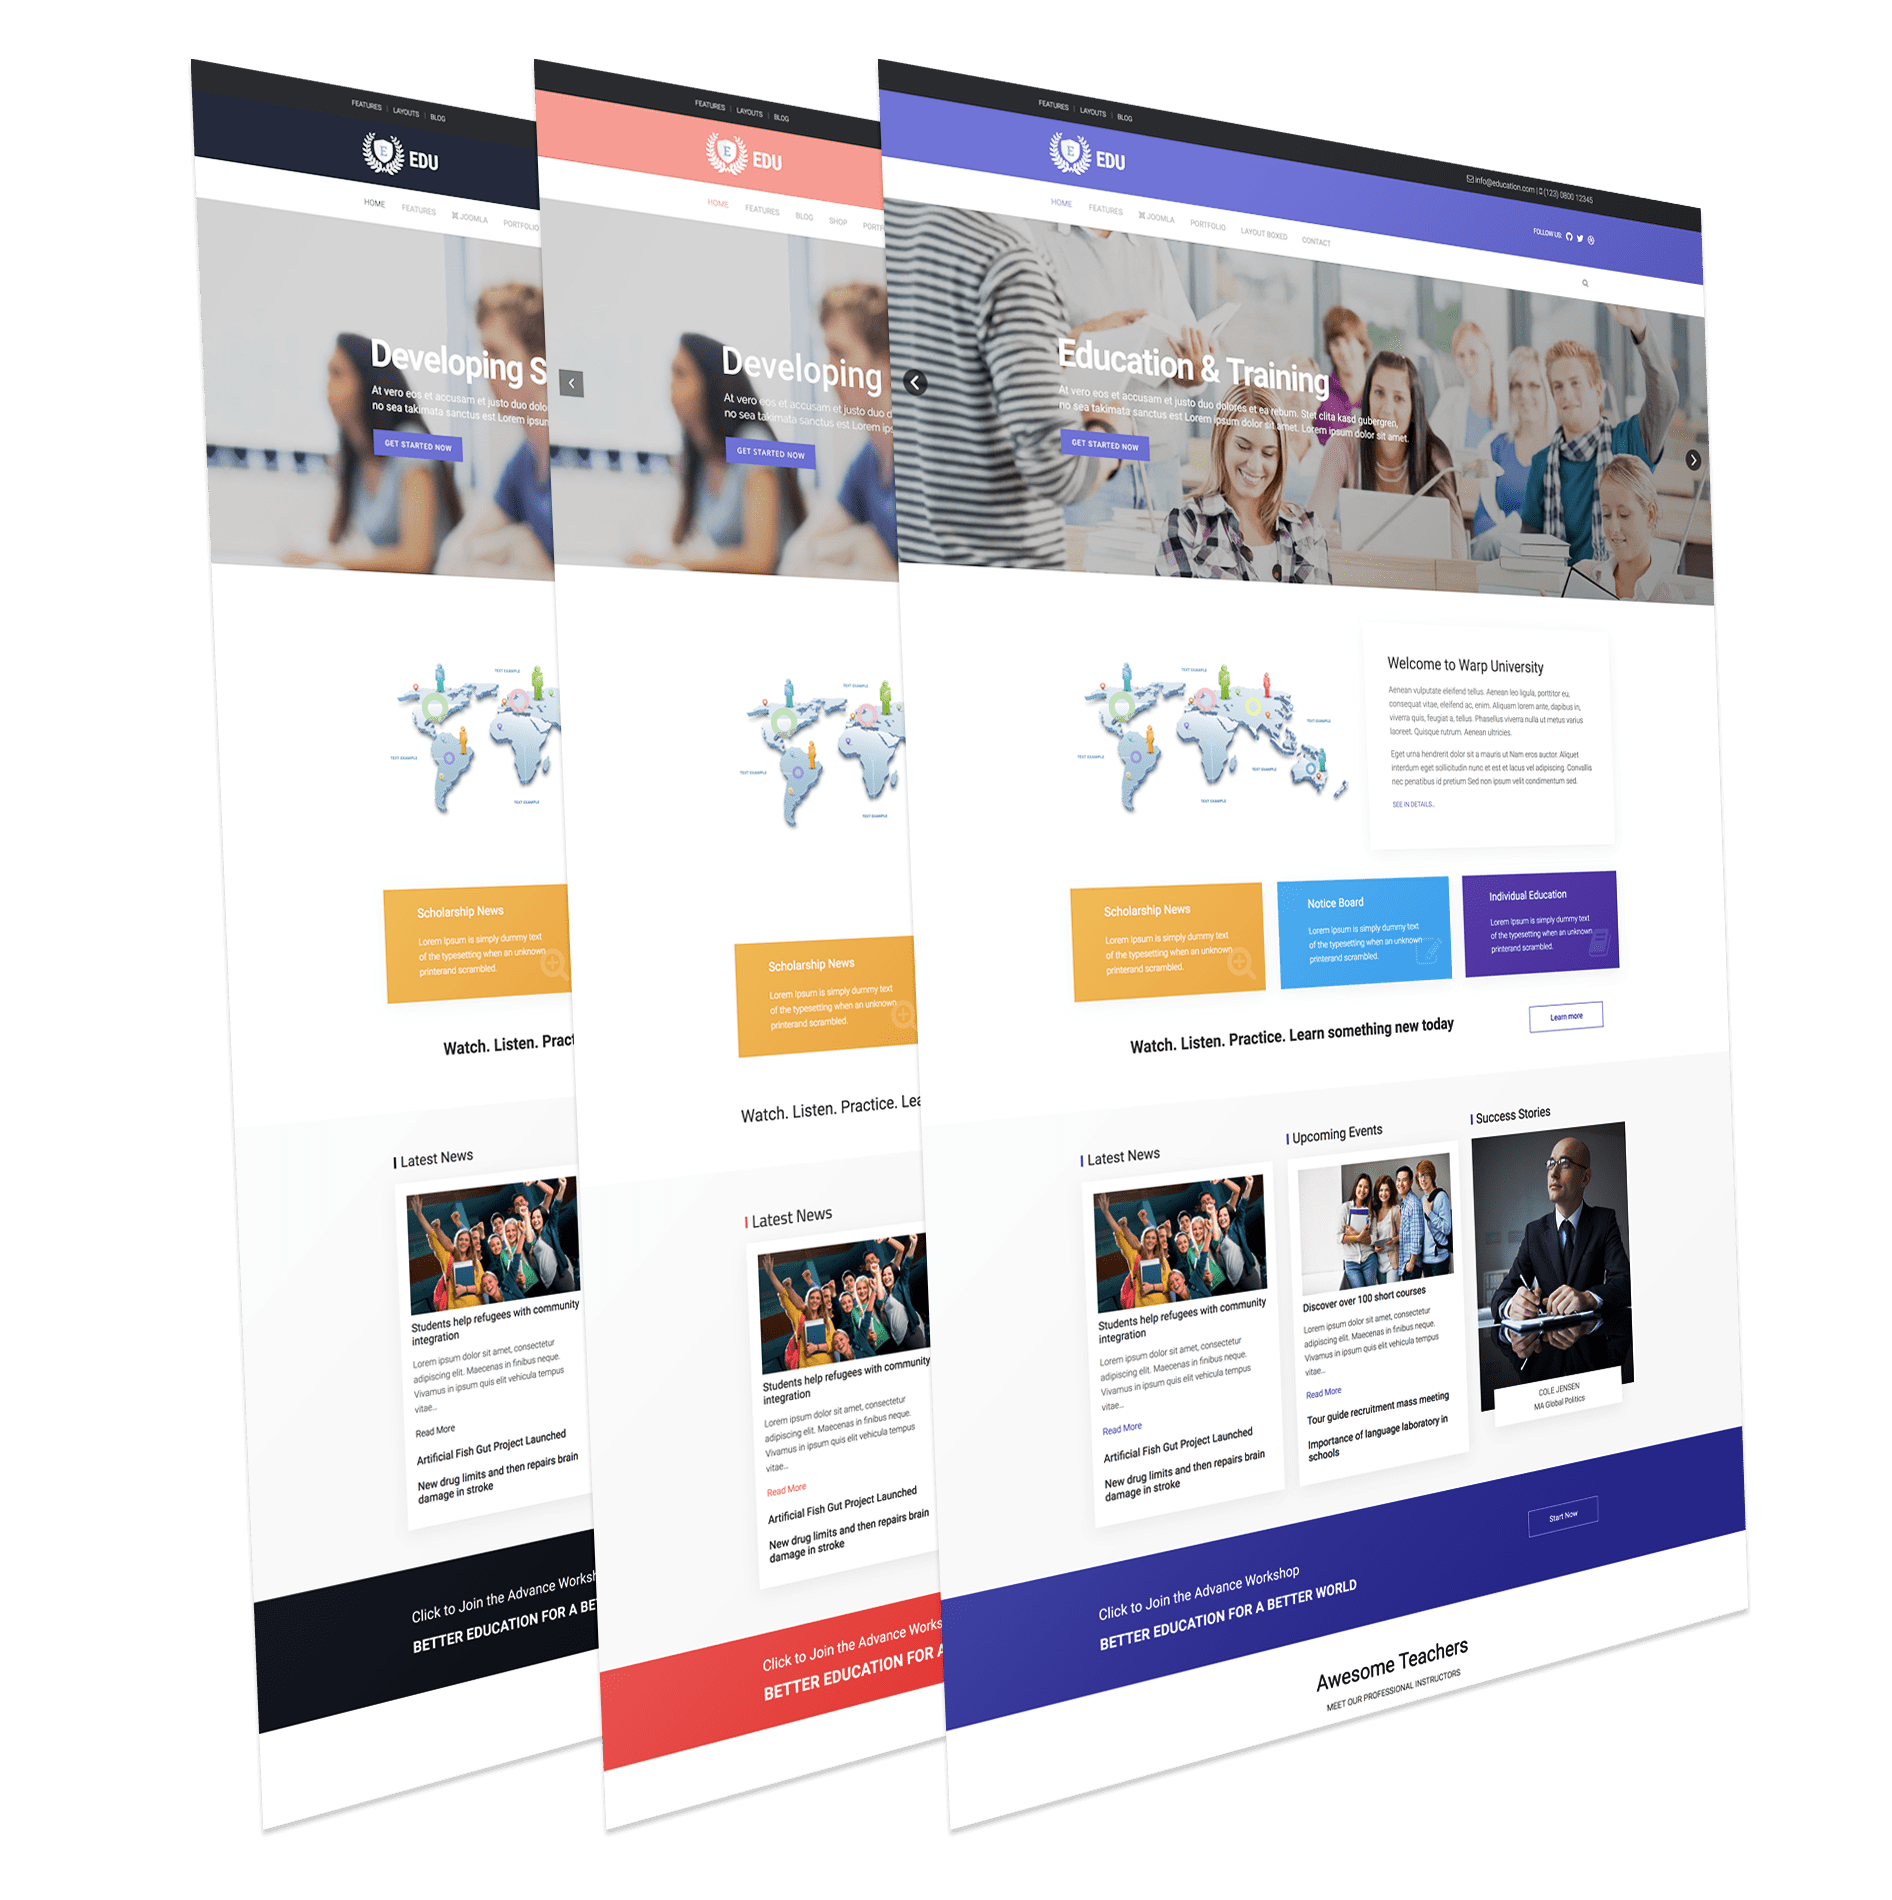 joomla org templates - wt education free education joomla template